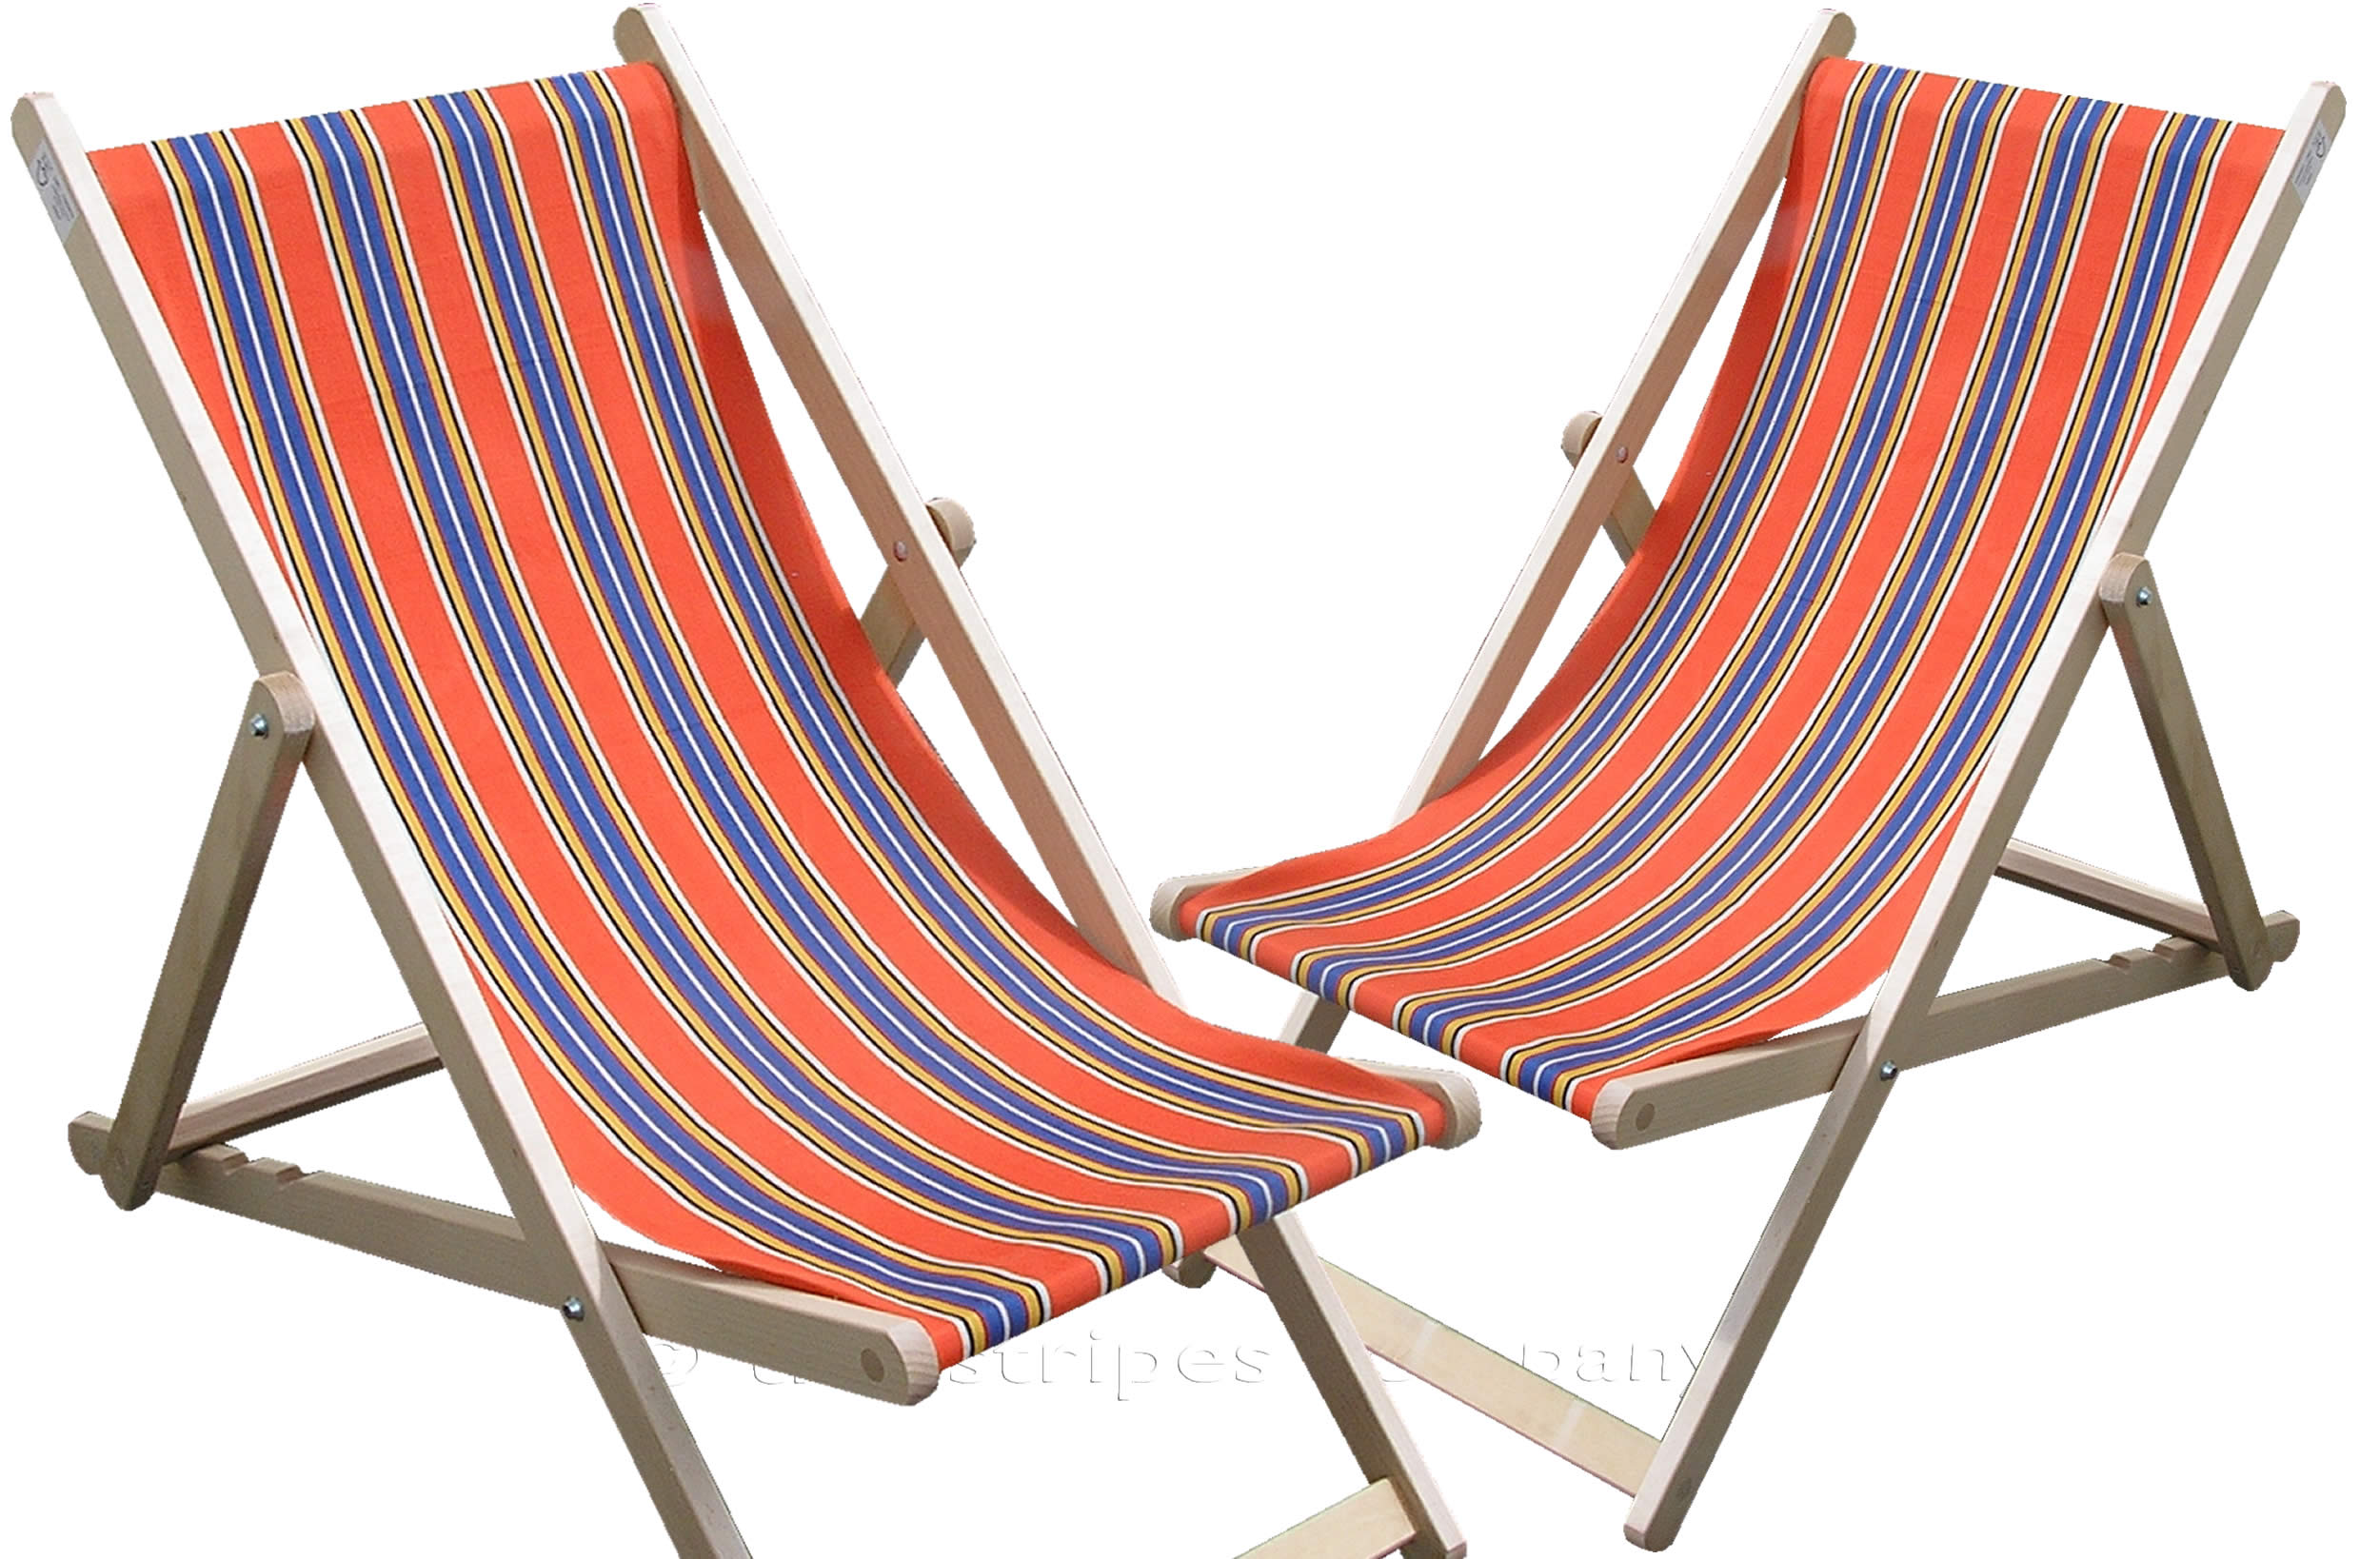 Burnt Orange Deckchairs | Wooden Folding Deck Chairs Jazz Stripes